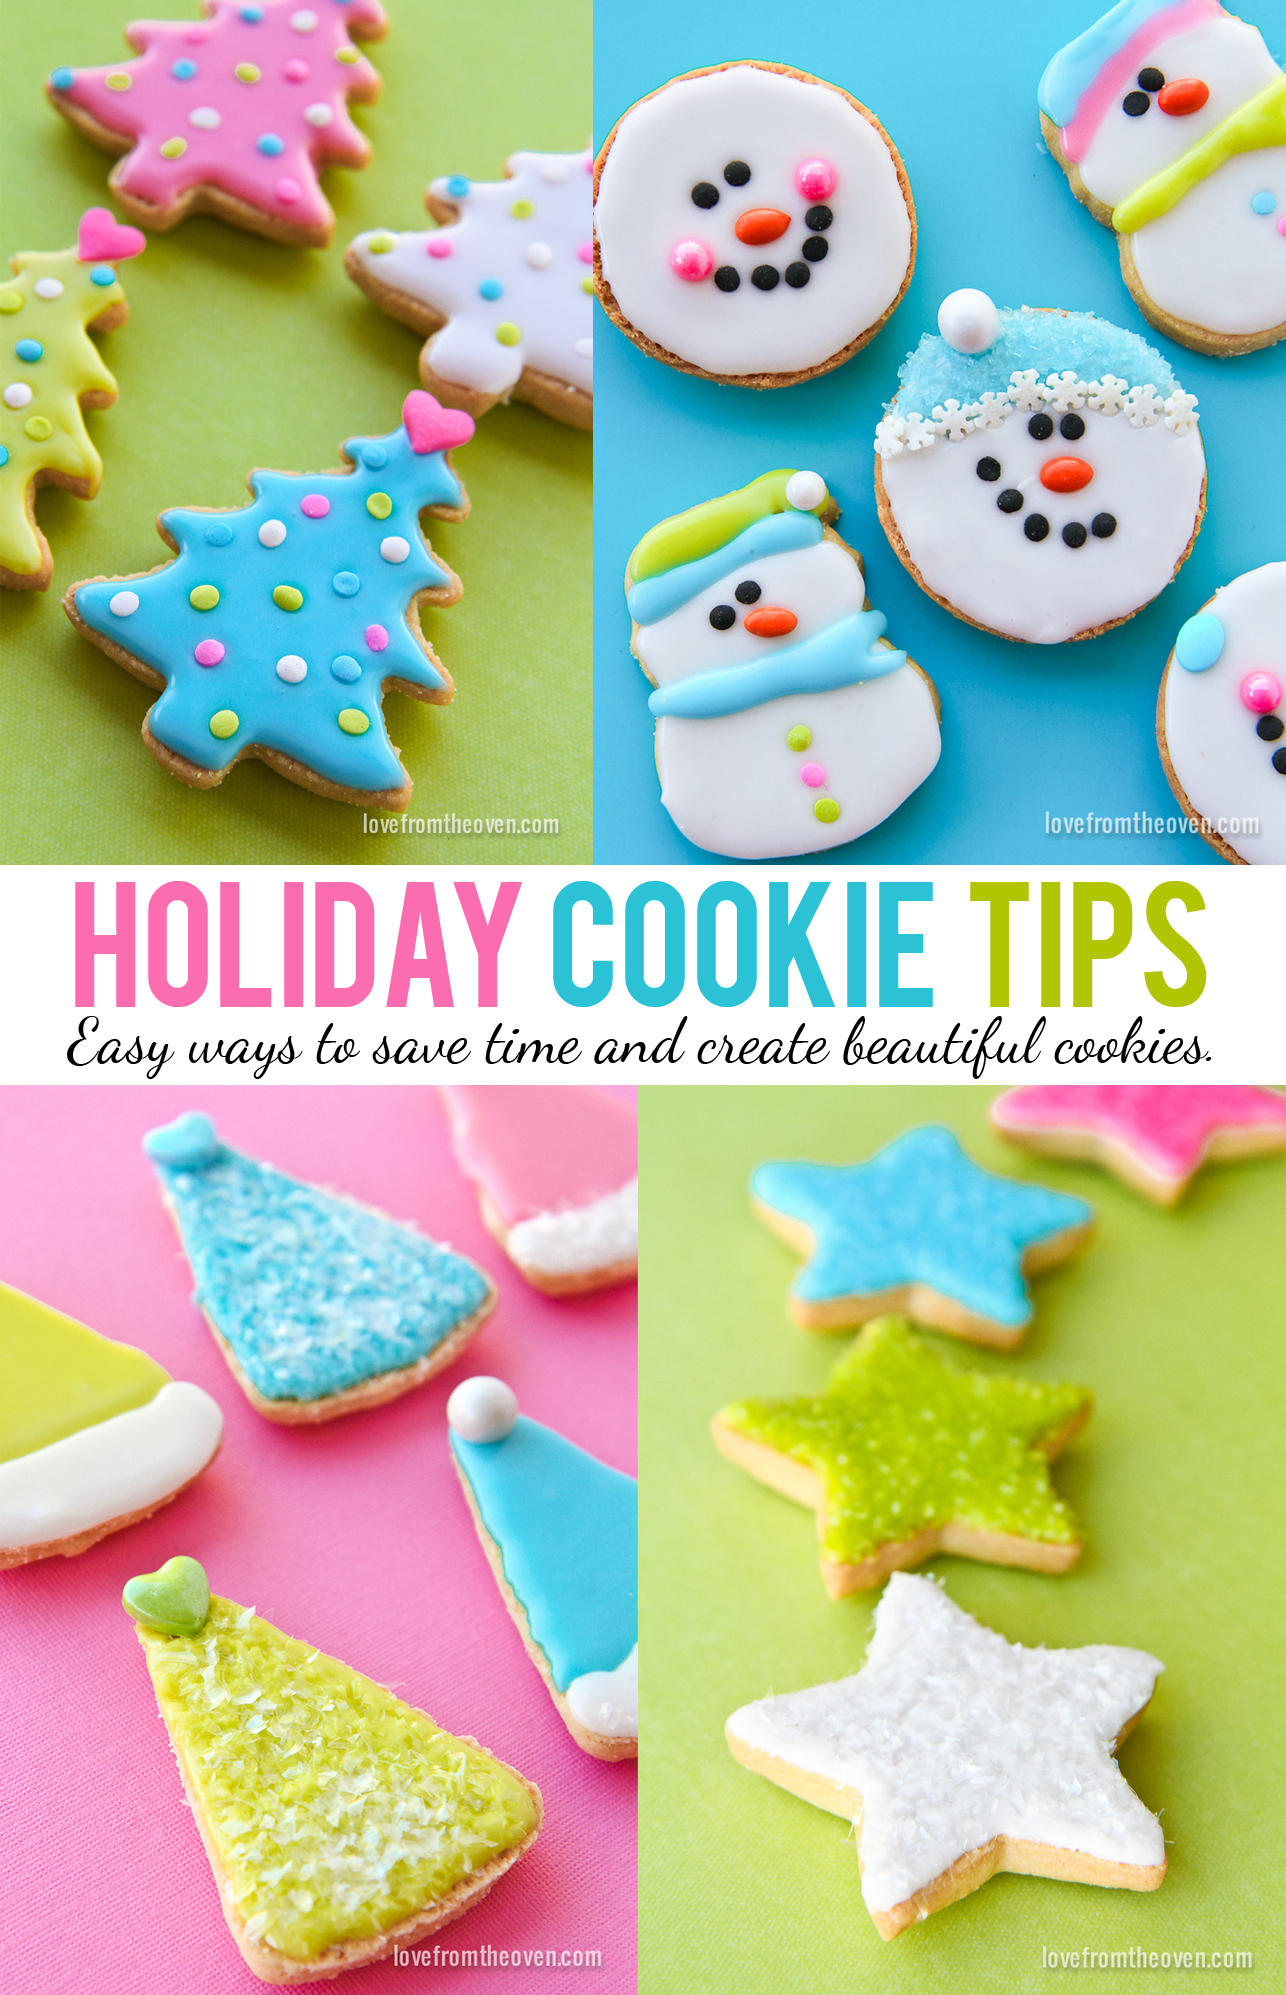 Holiday Cookie Tips From Love From The Oven. Cookies